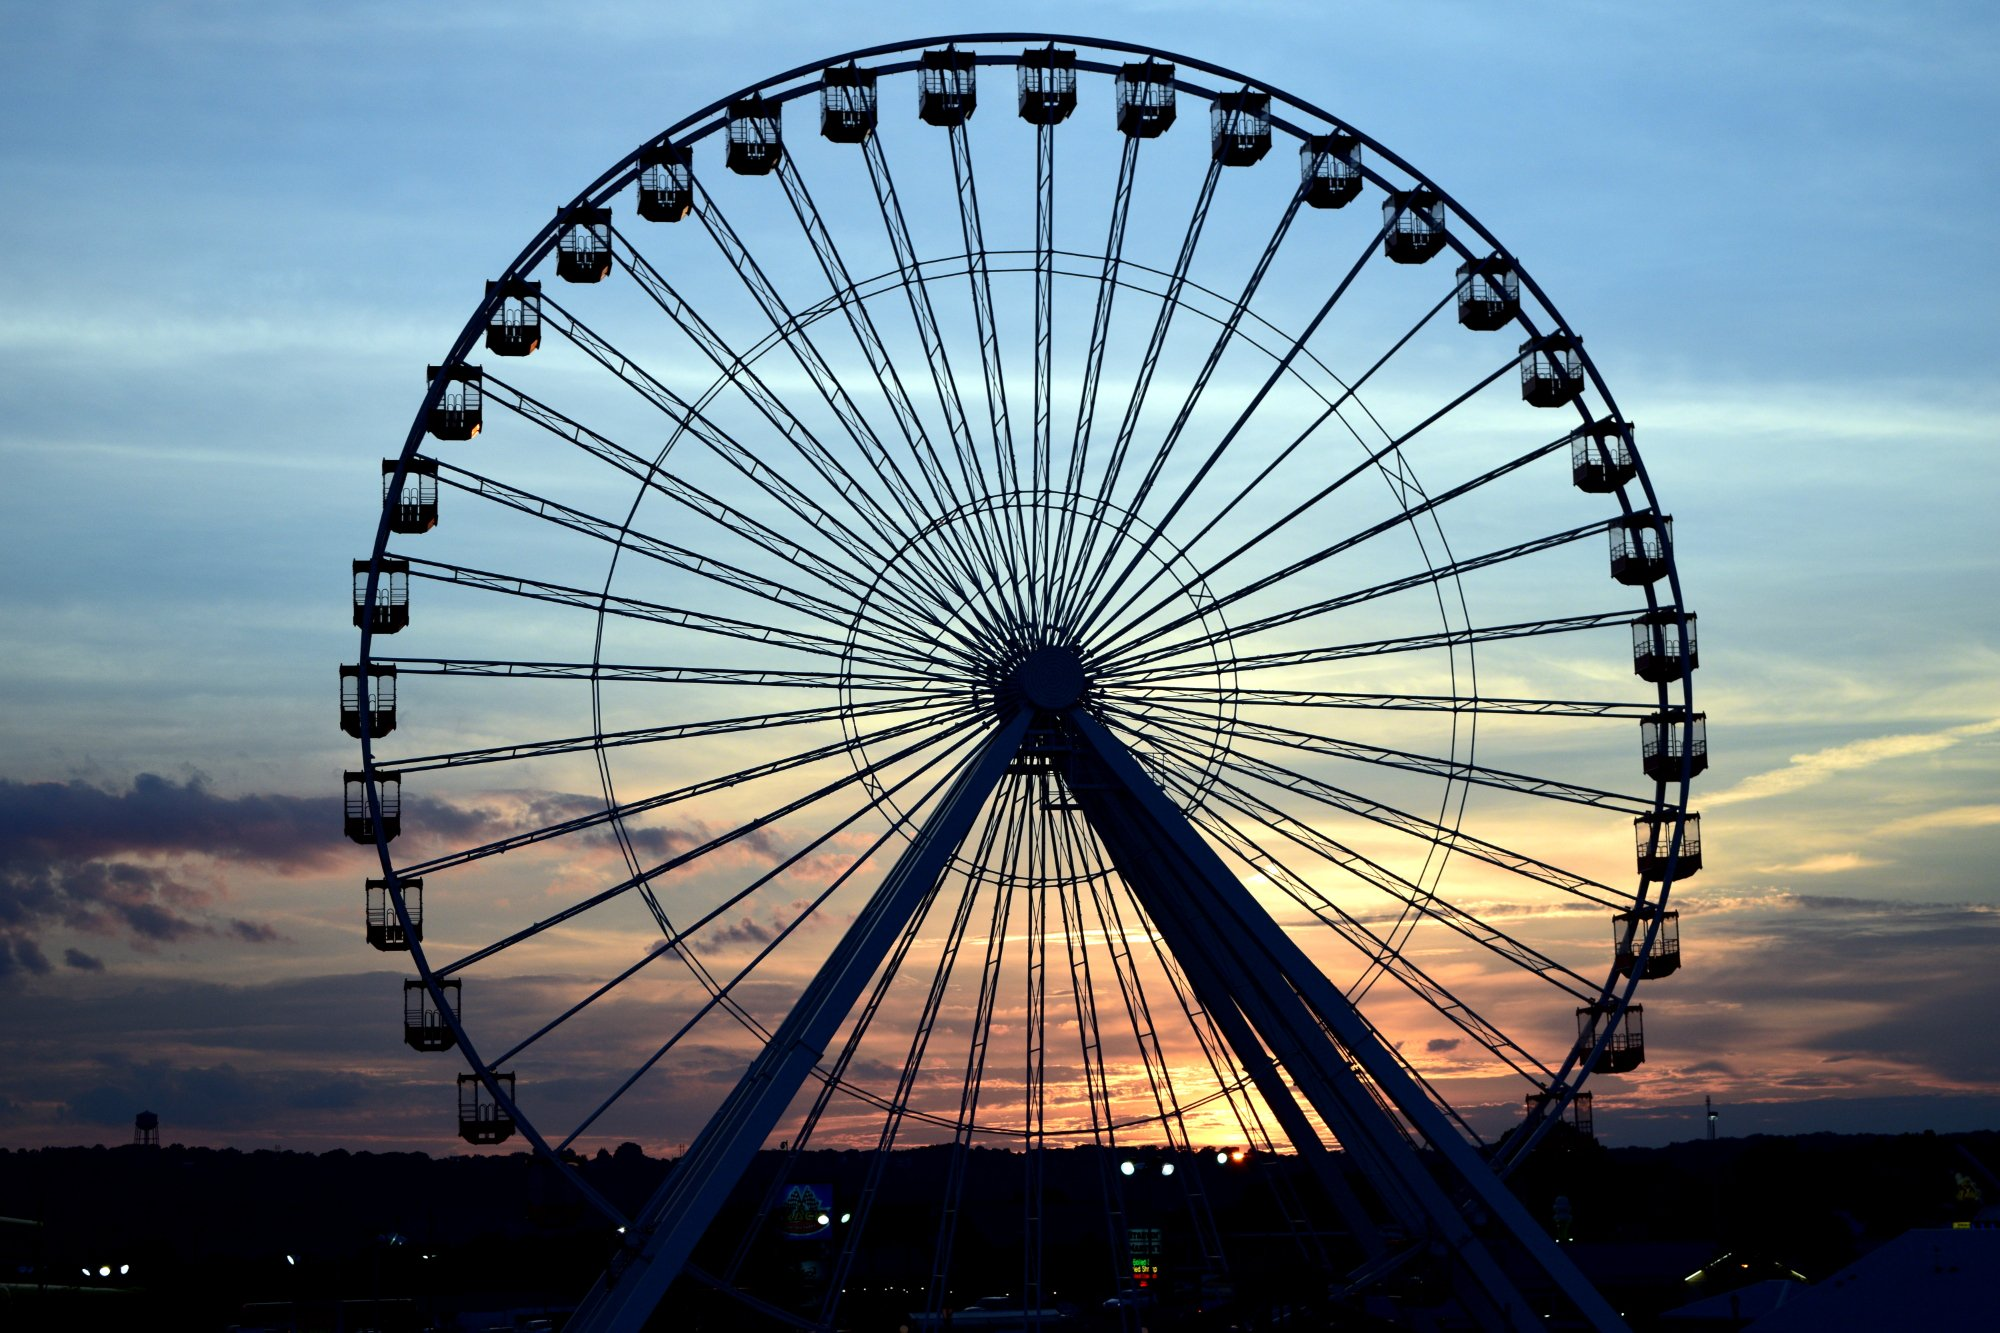 Branson at sunset is just beautiful. This was taken near the new Ferris Wheel on the Strip.